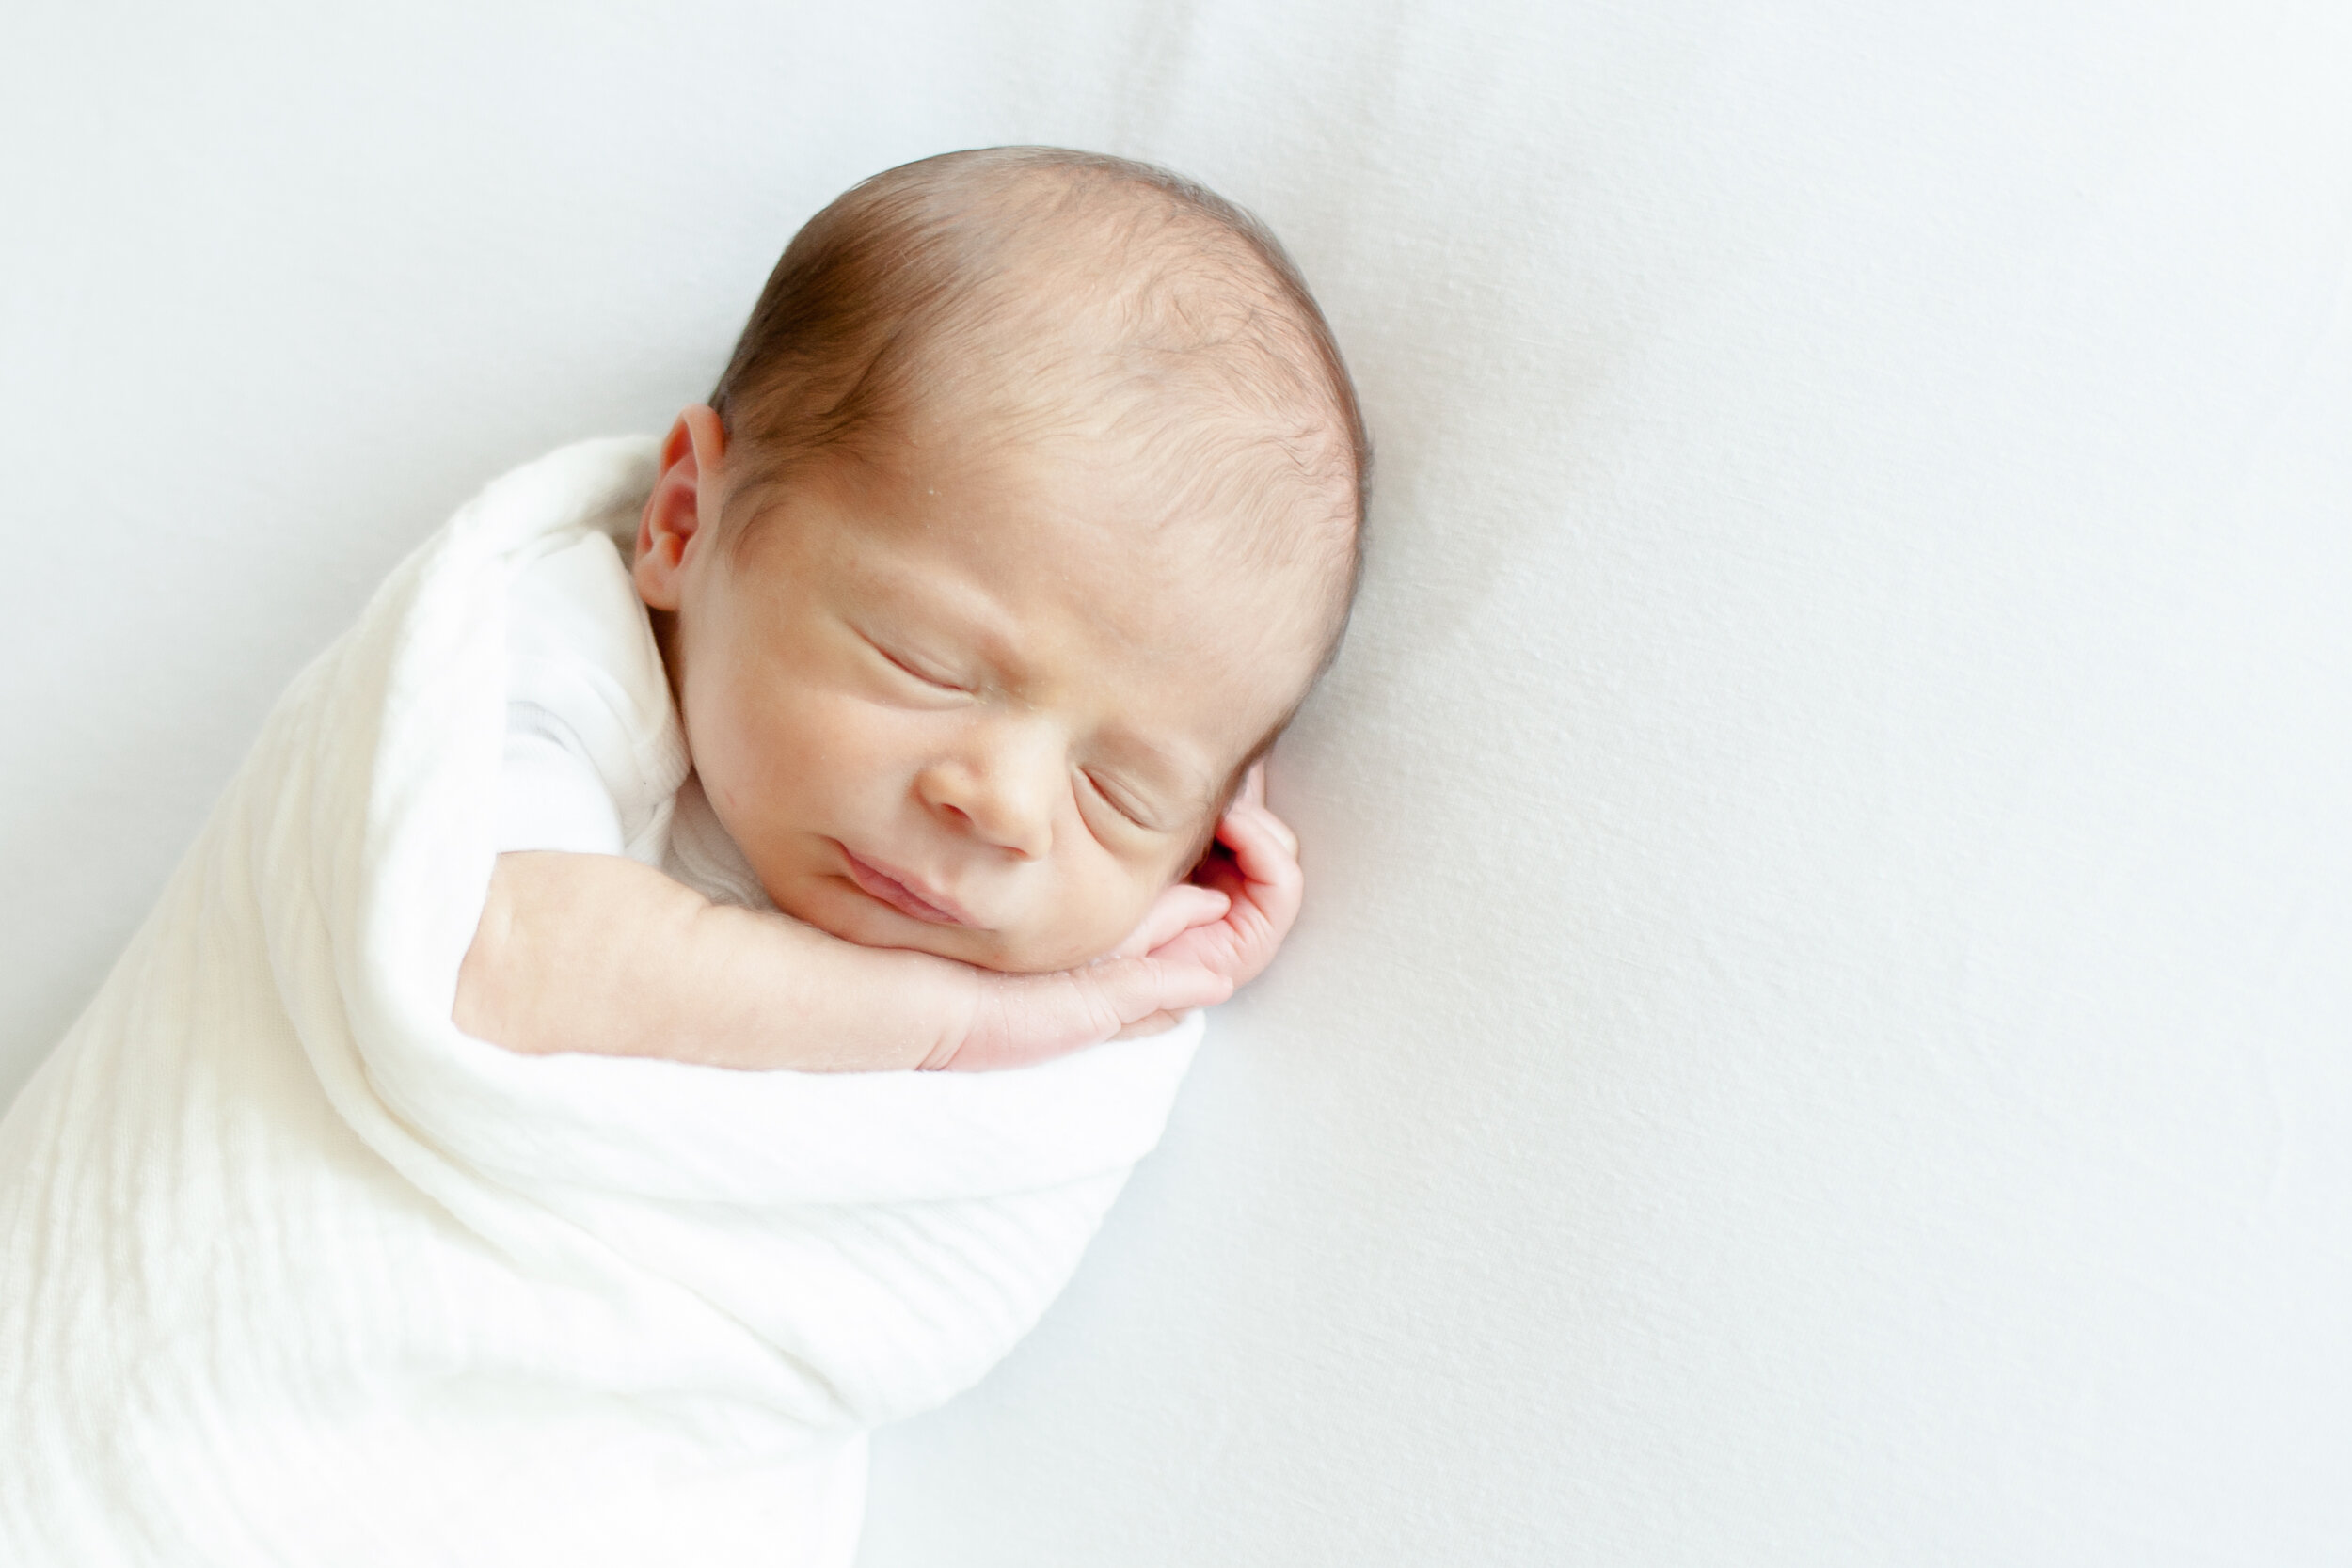 Newborn baby swaddled in white blanket with white background in natural lighting.